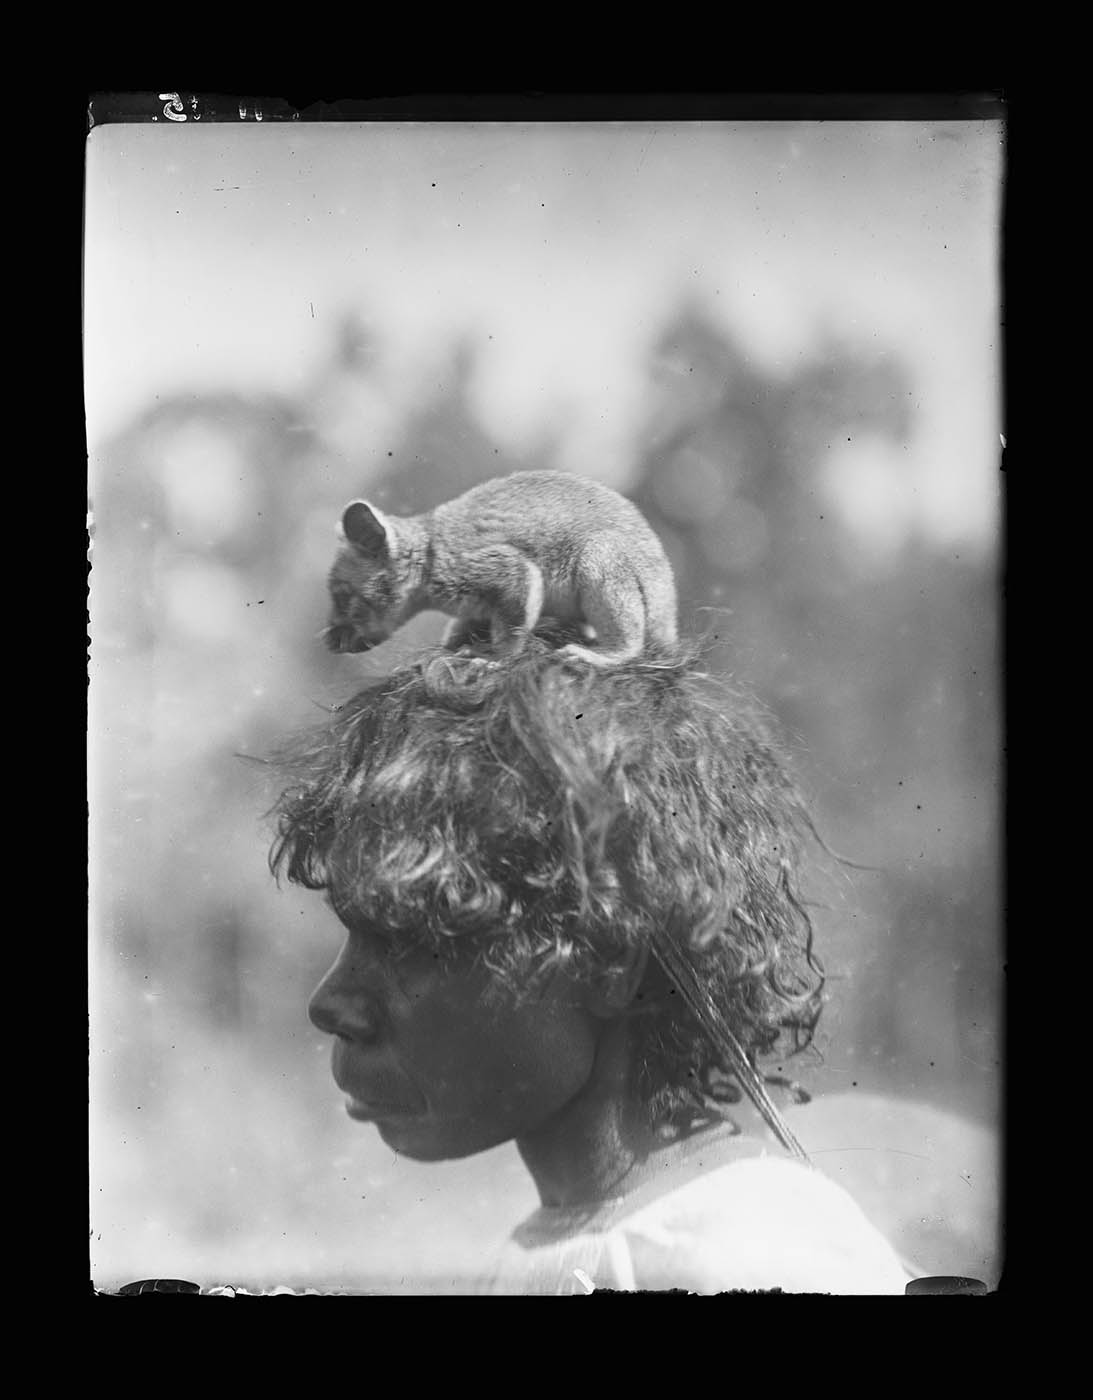 A baby possum perches on a woman's head. The woman faces to the left of the image; the sun catches highlights in her wavy hair. She is visible down to her shoulders and appears to be wearing a pale European shirt or dress. The background is out of focus and very indistinct. - click to view larger image